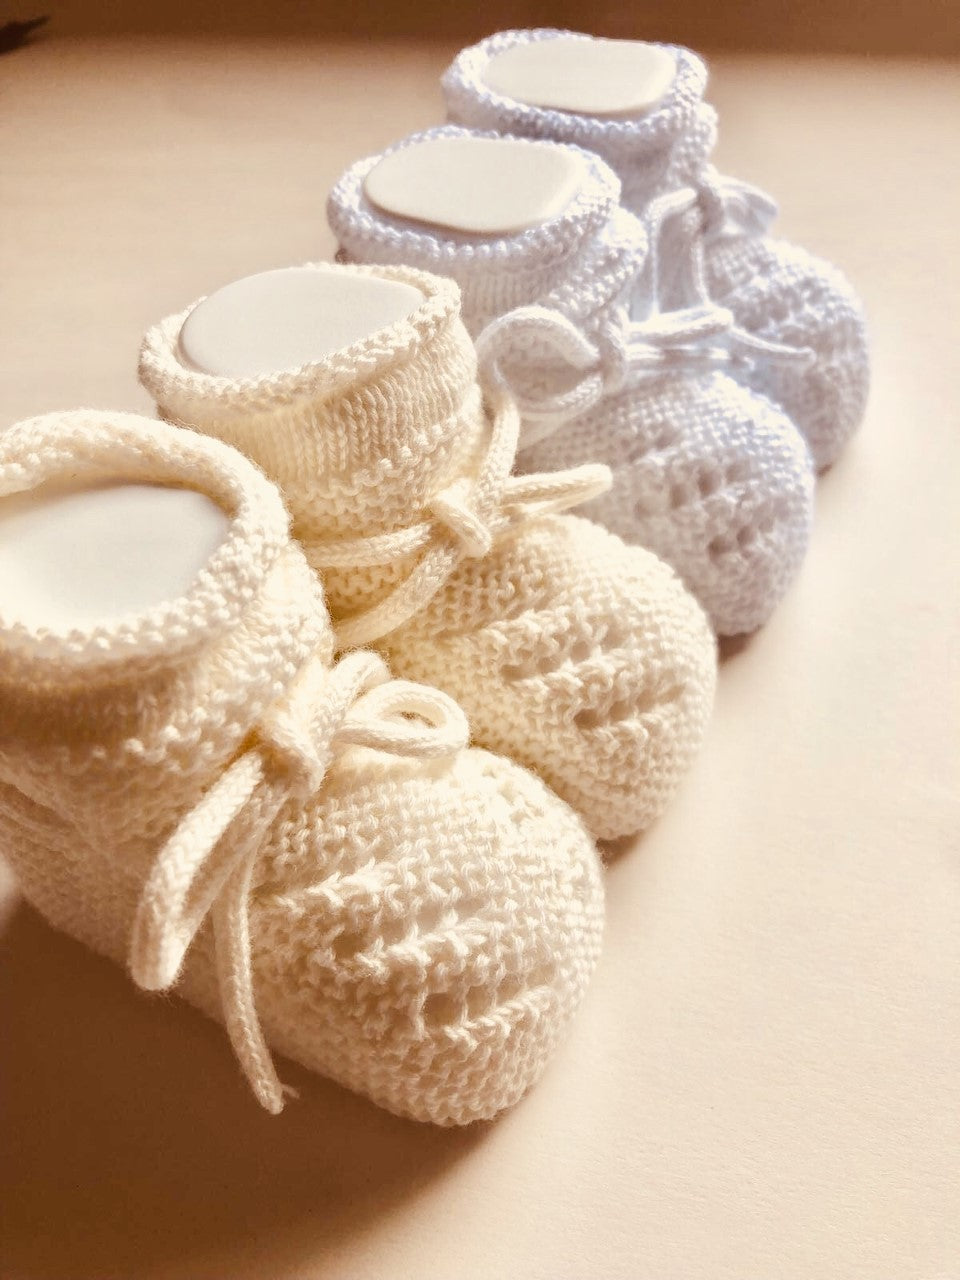 Adorable Unisex Knitted Baby Booties. Available in White and Ecru. Made in Spain with love.